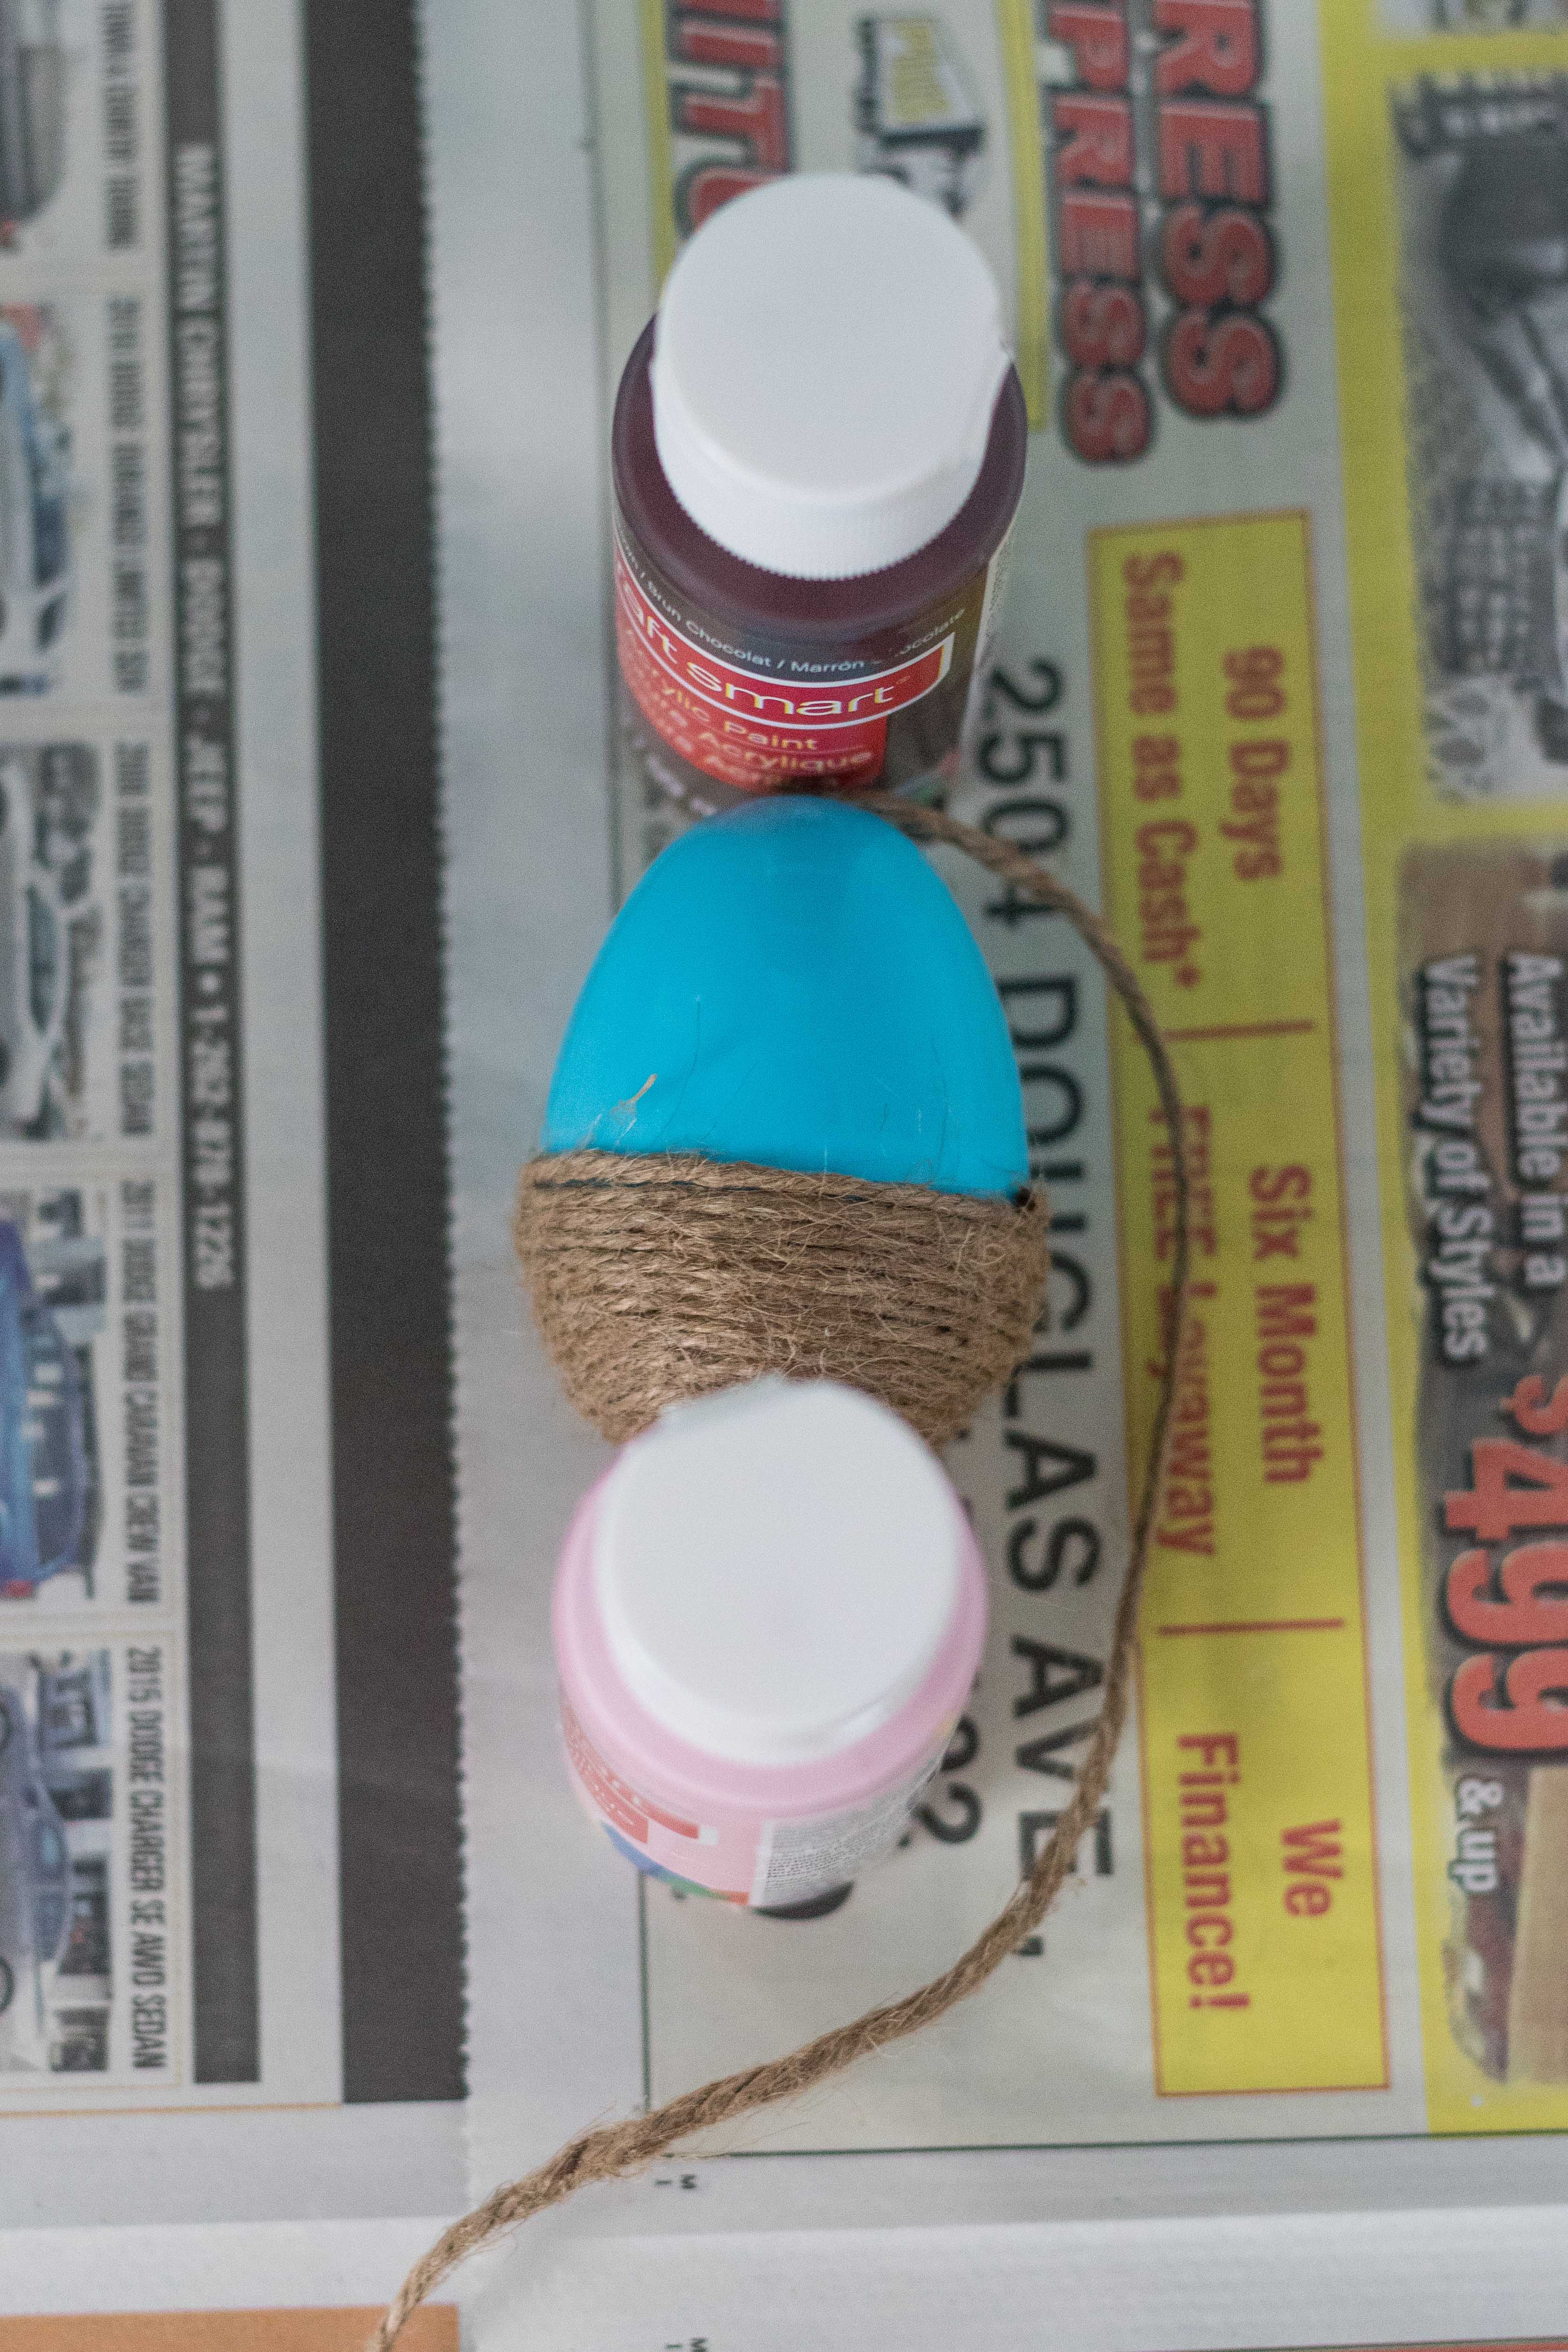 Using the Mod Podge, glue the end of the twine to the base of the egg. Allow it to dry completely.